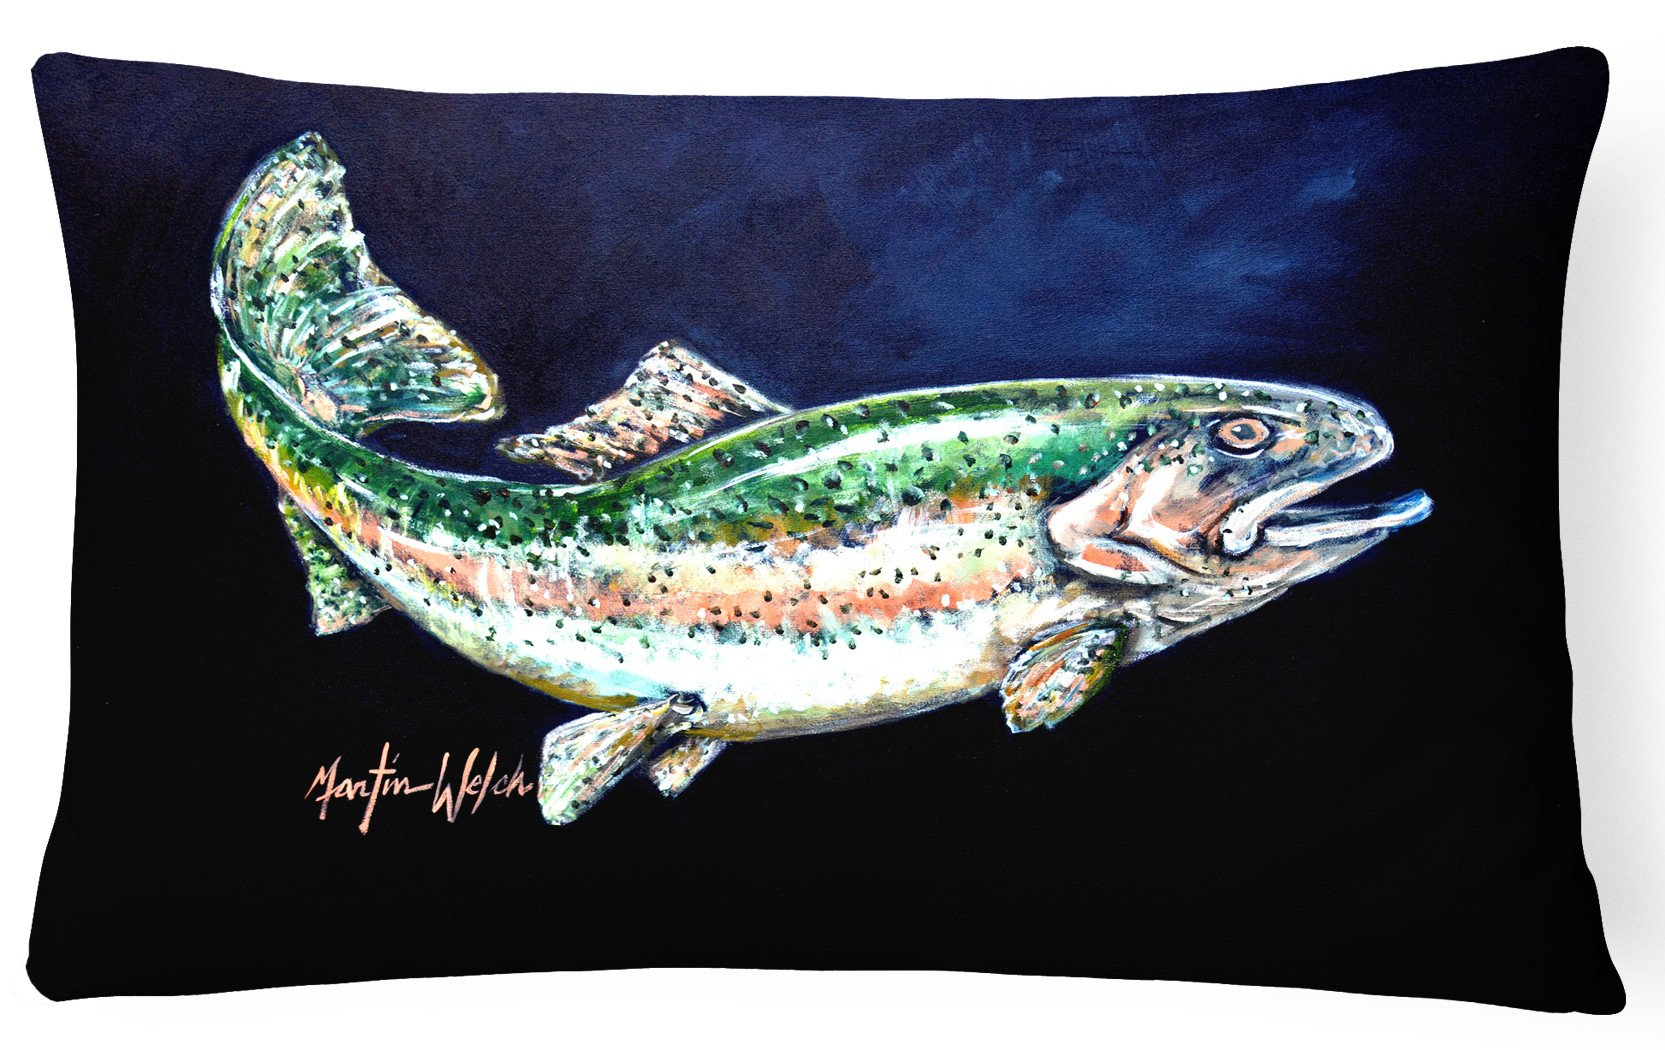 Deep Blue Rainbow Trout Fabric Decorative Pillow MW1213PW1216 by Caroline's Treasures